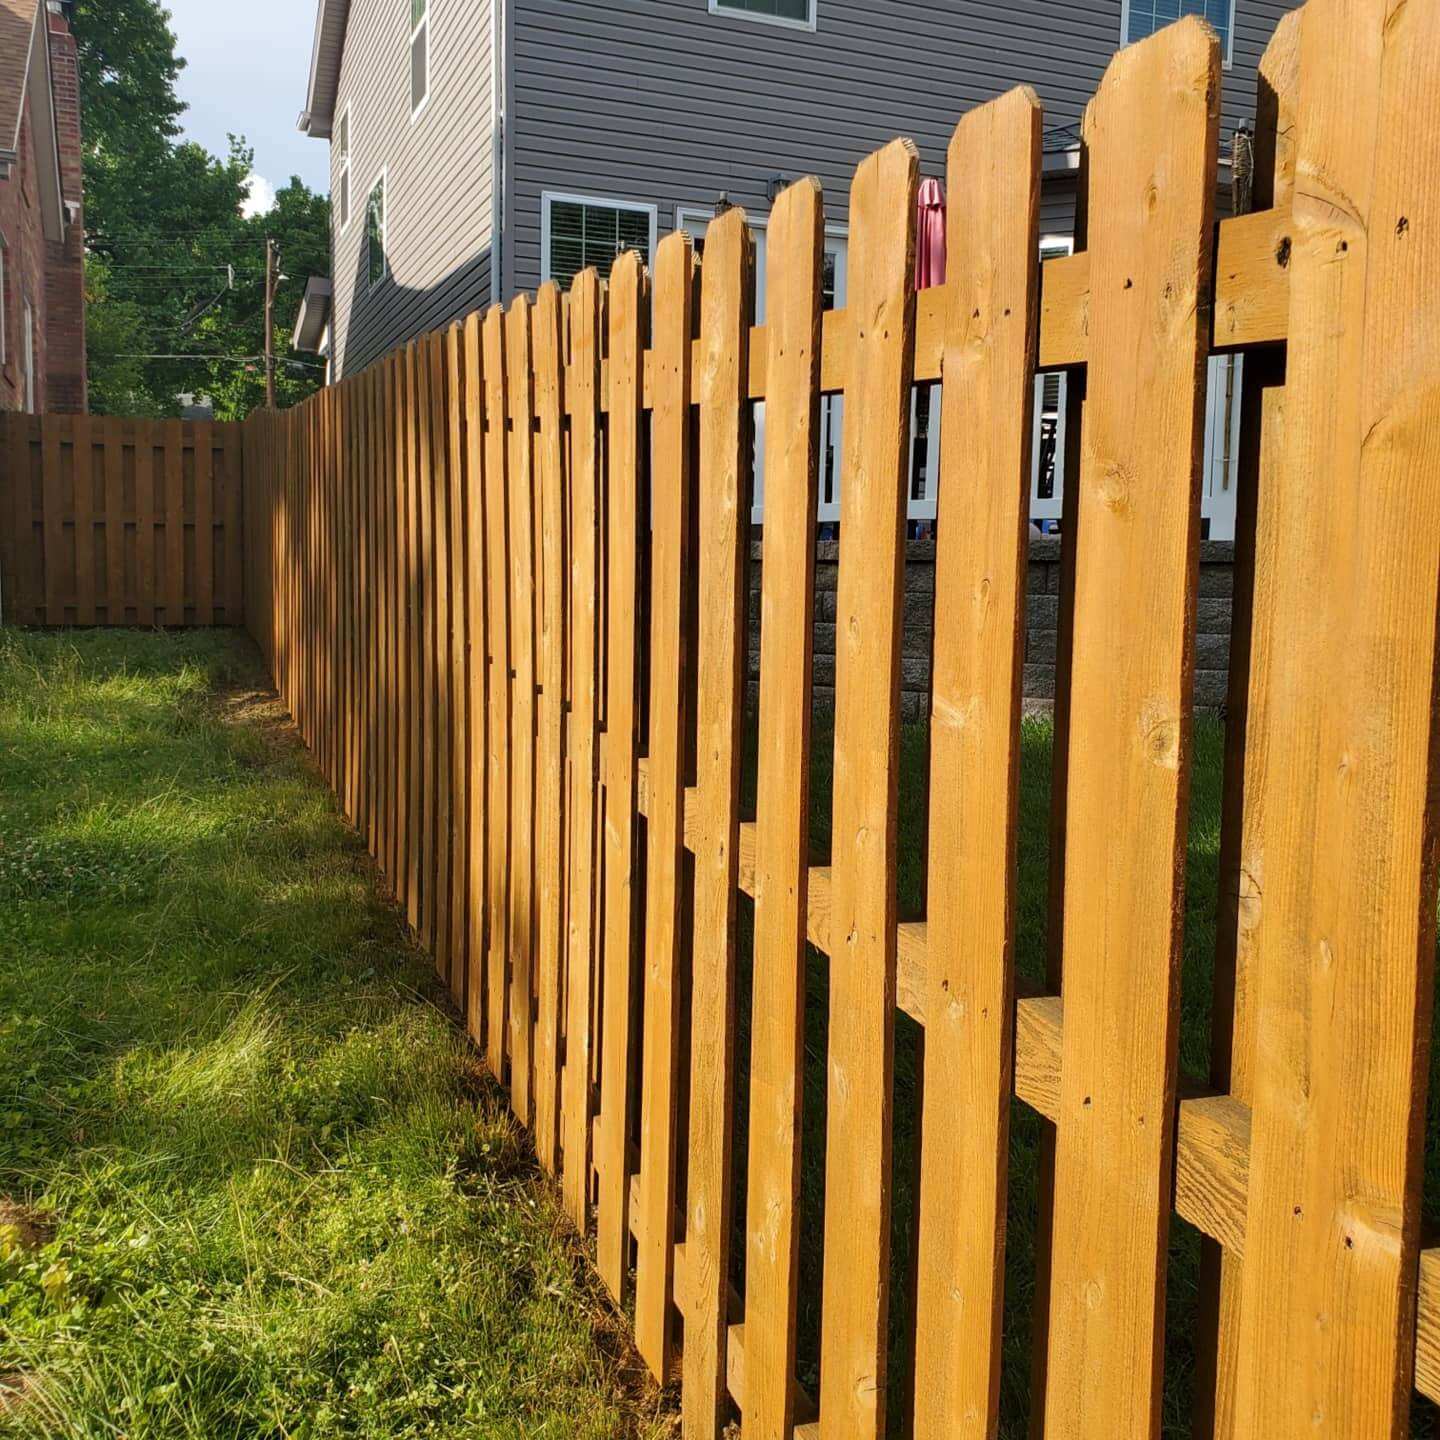 st-louis-fence-staining-5